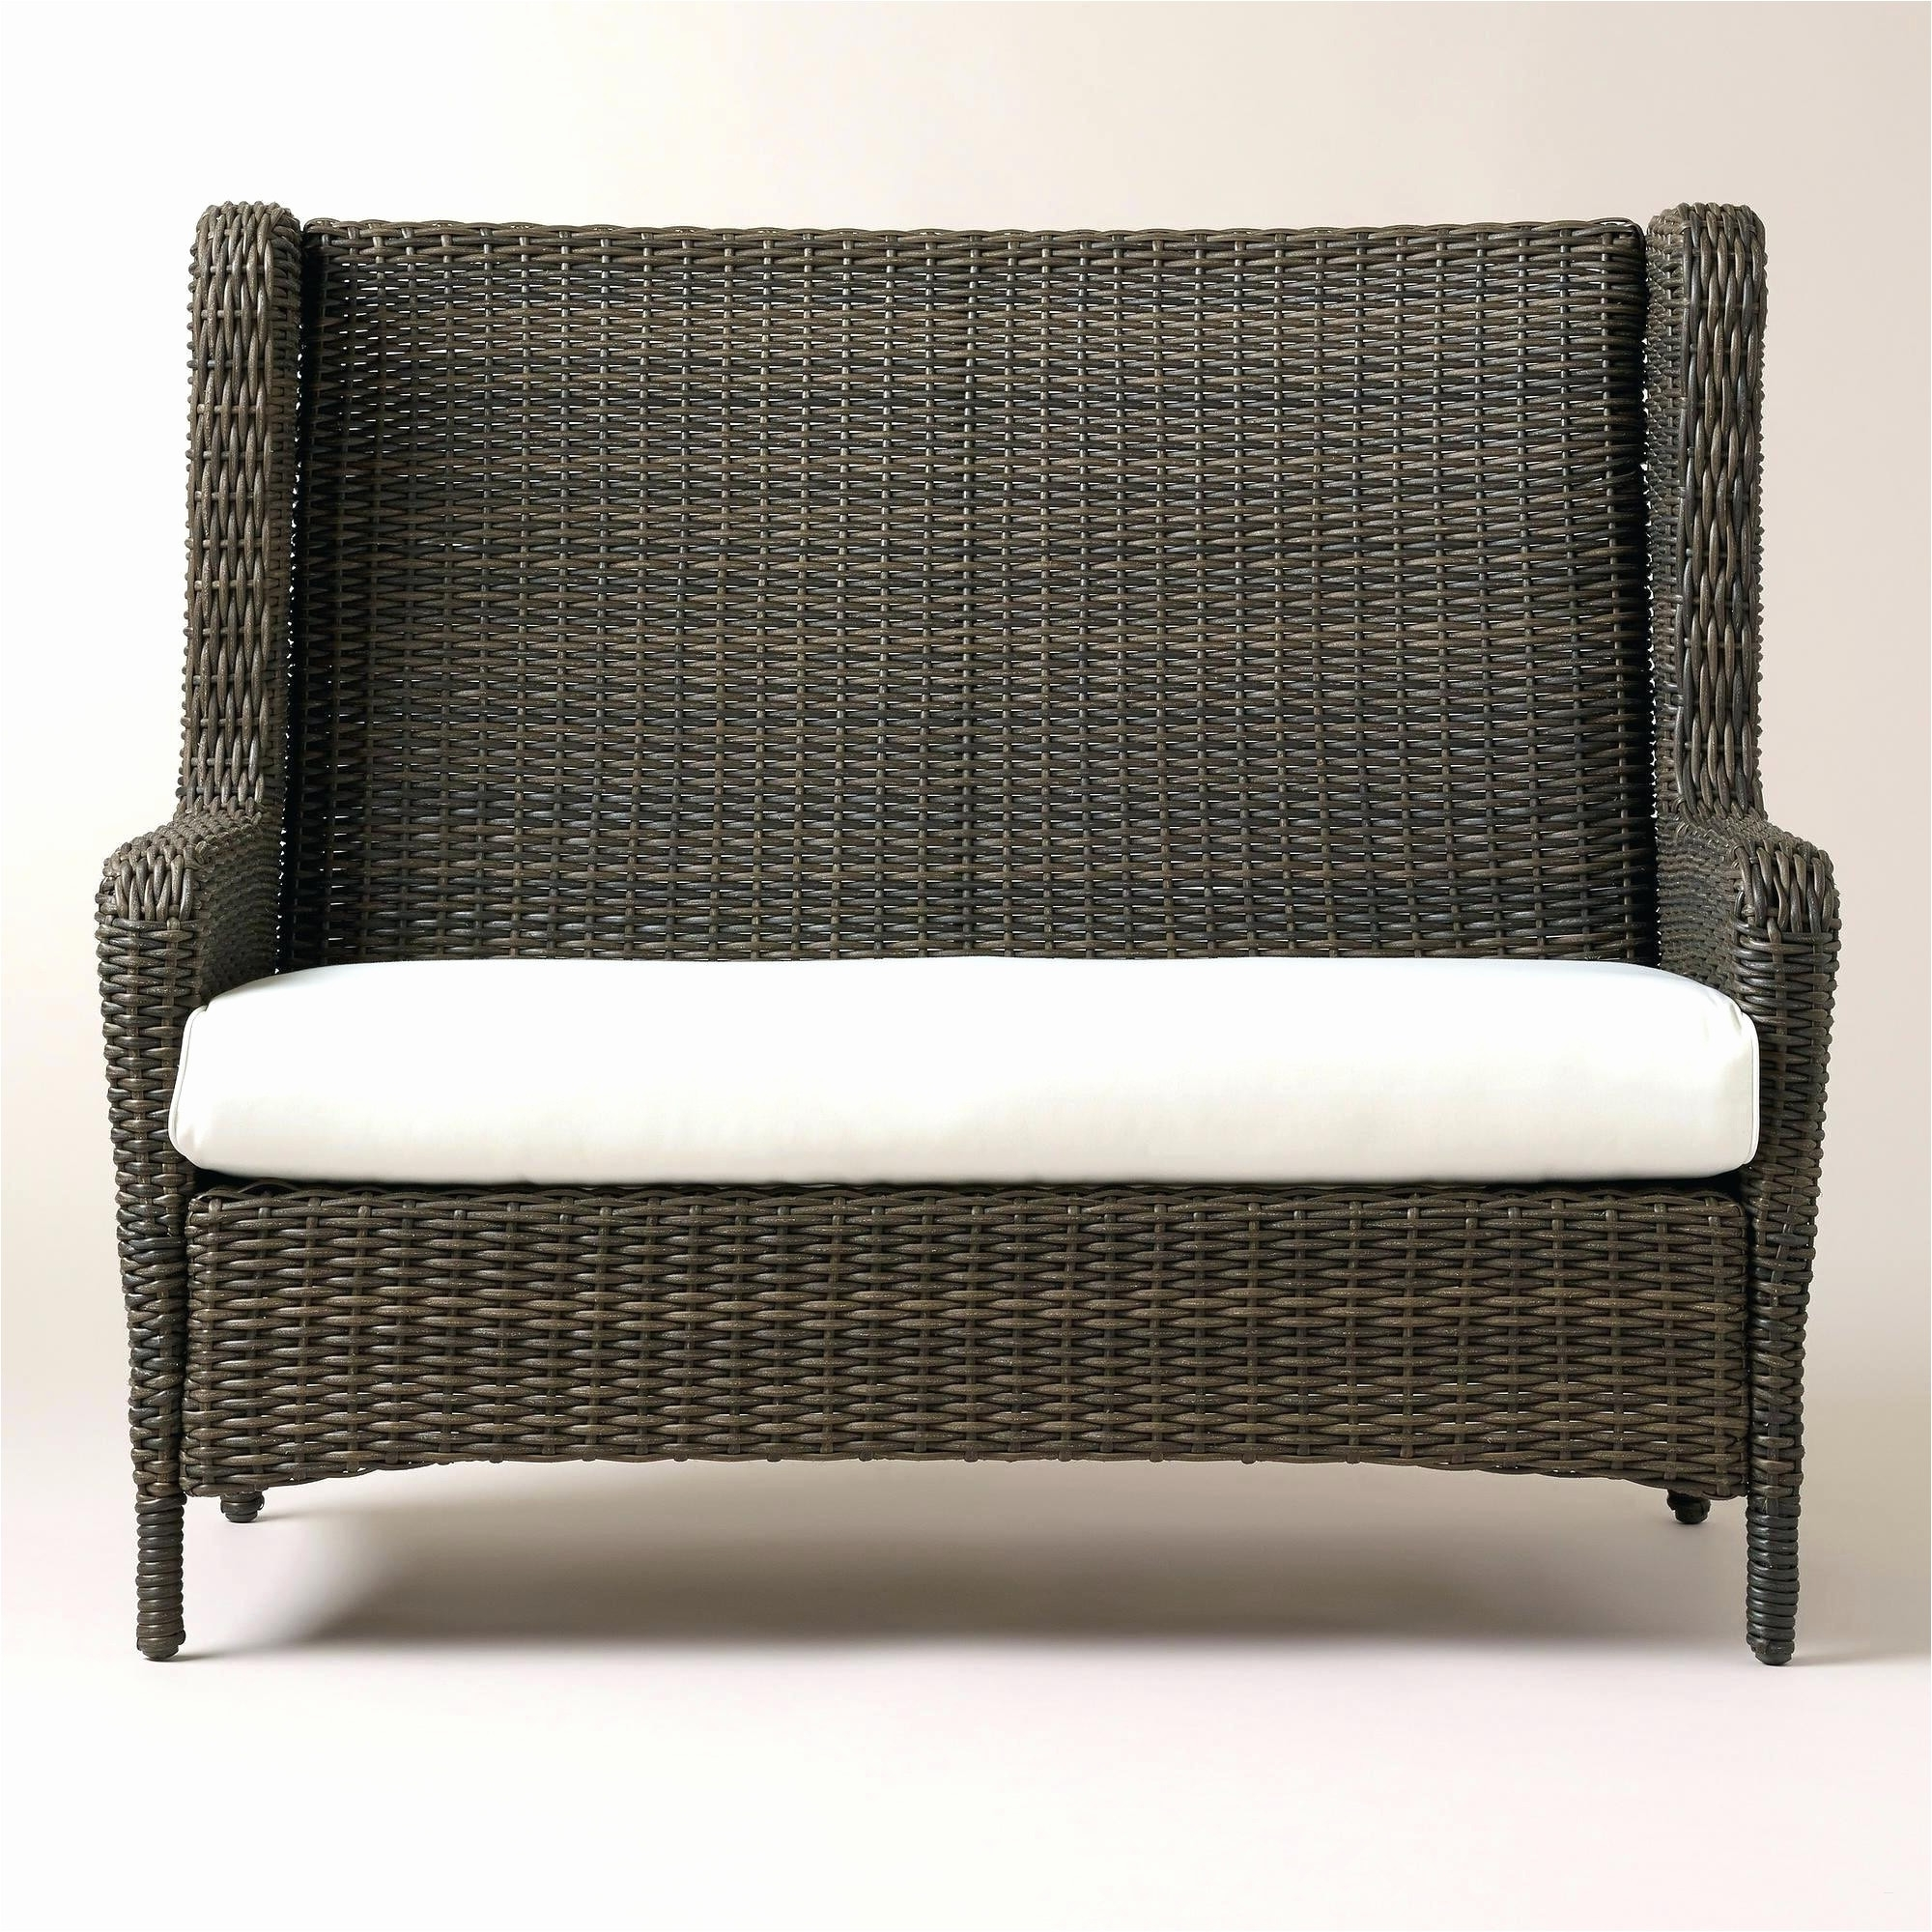 Preferred 6 New Wayfair Rocking Chair (View 15 of 15)